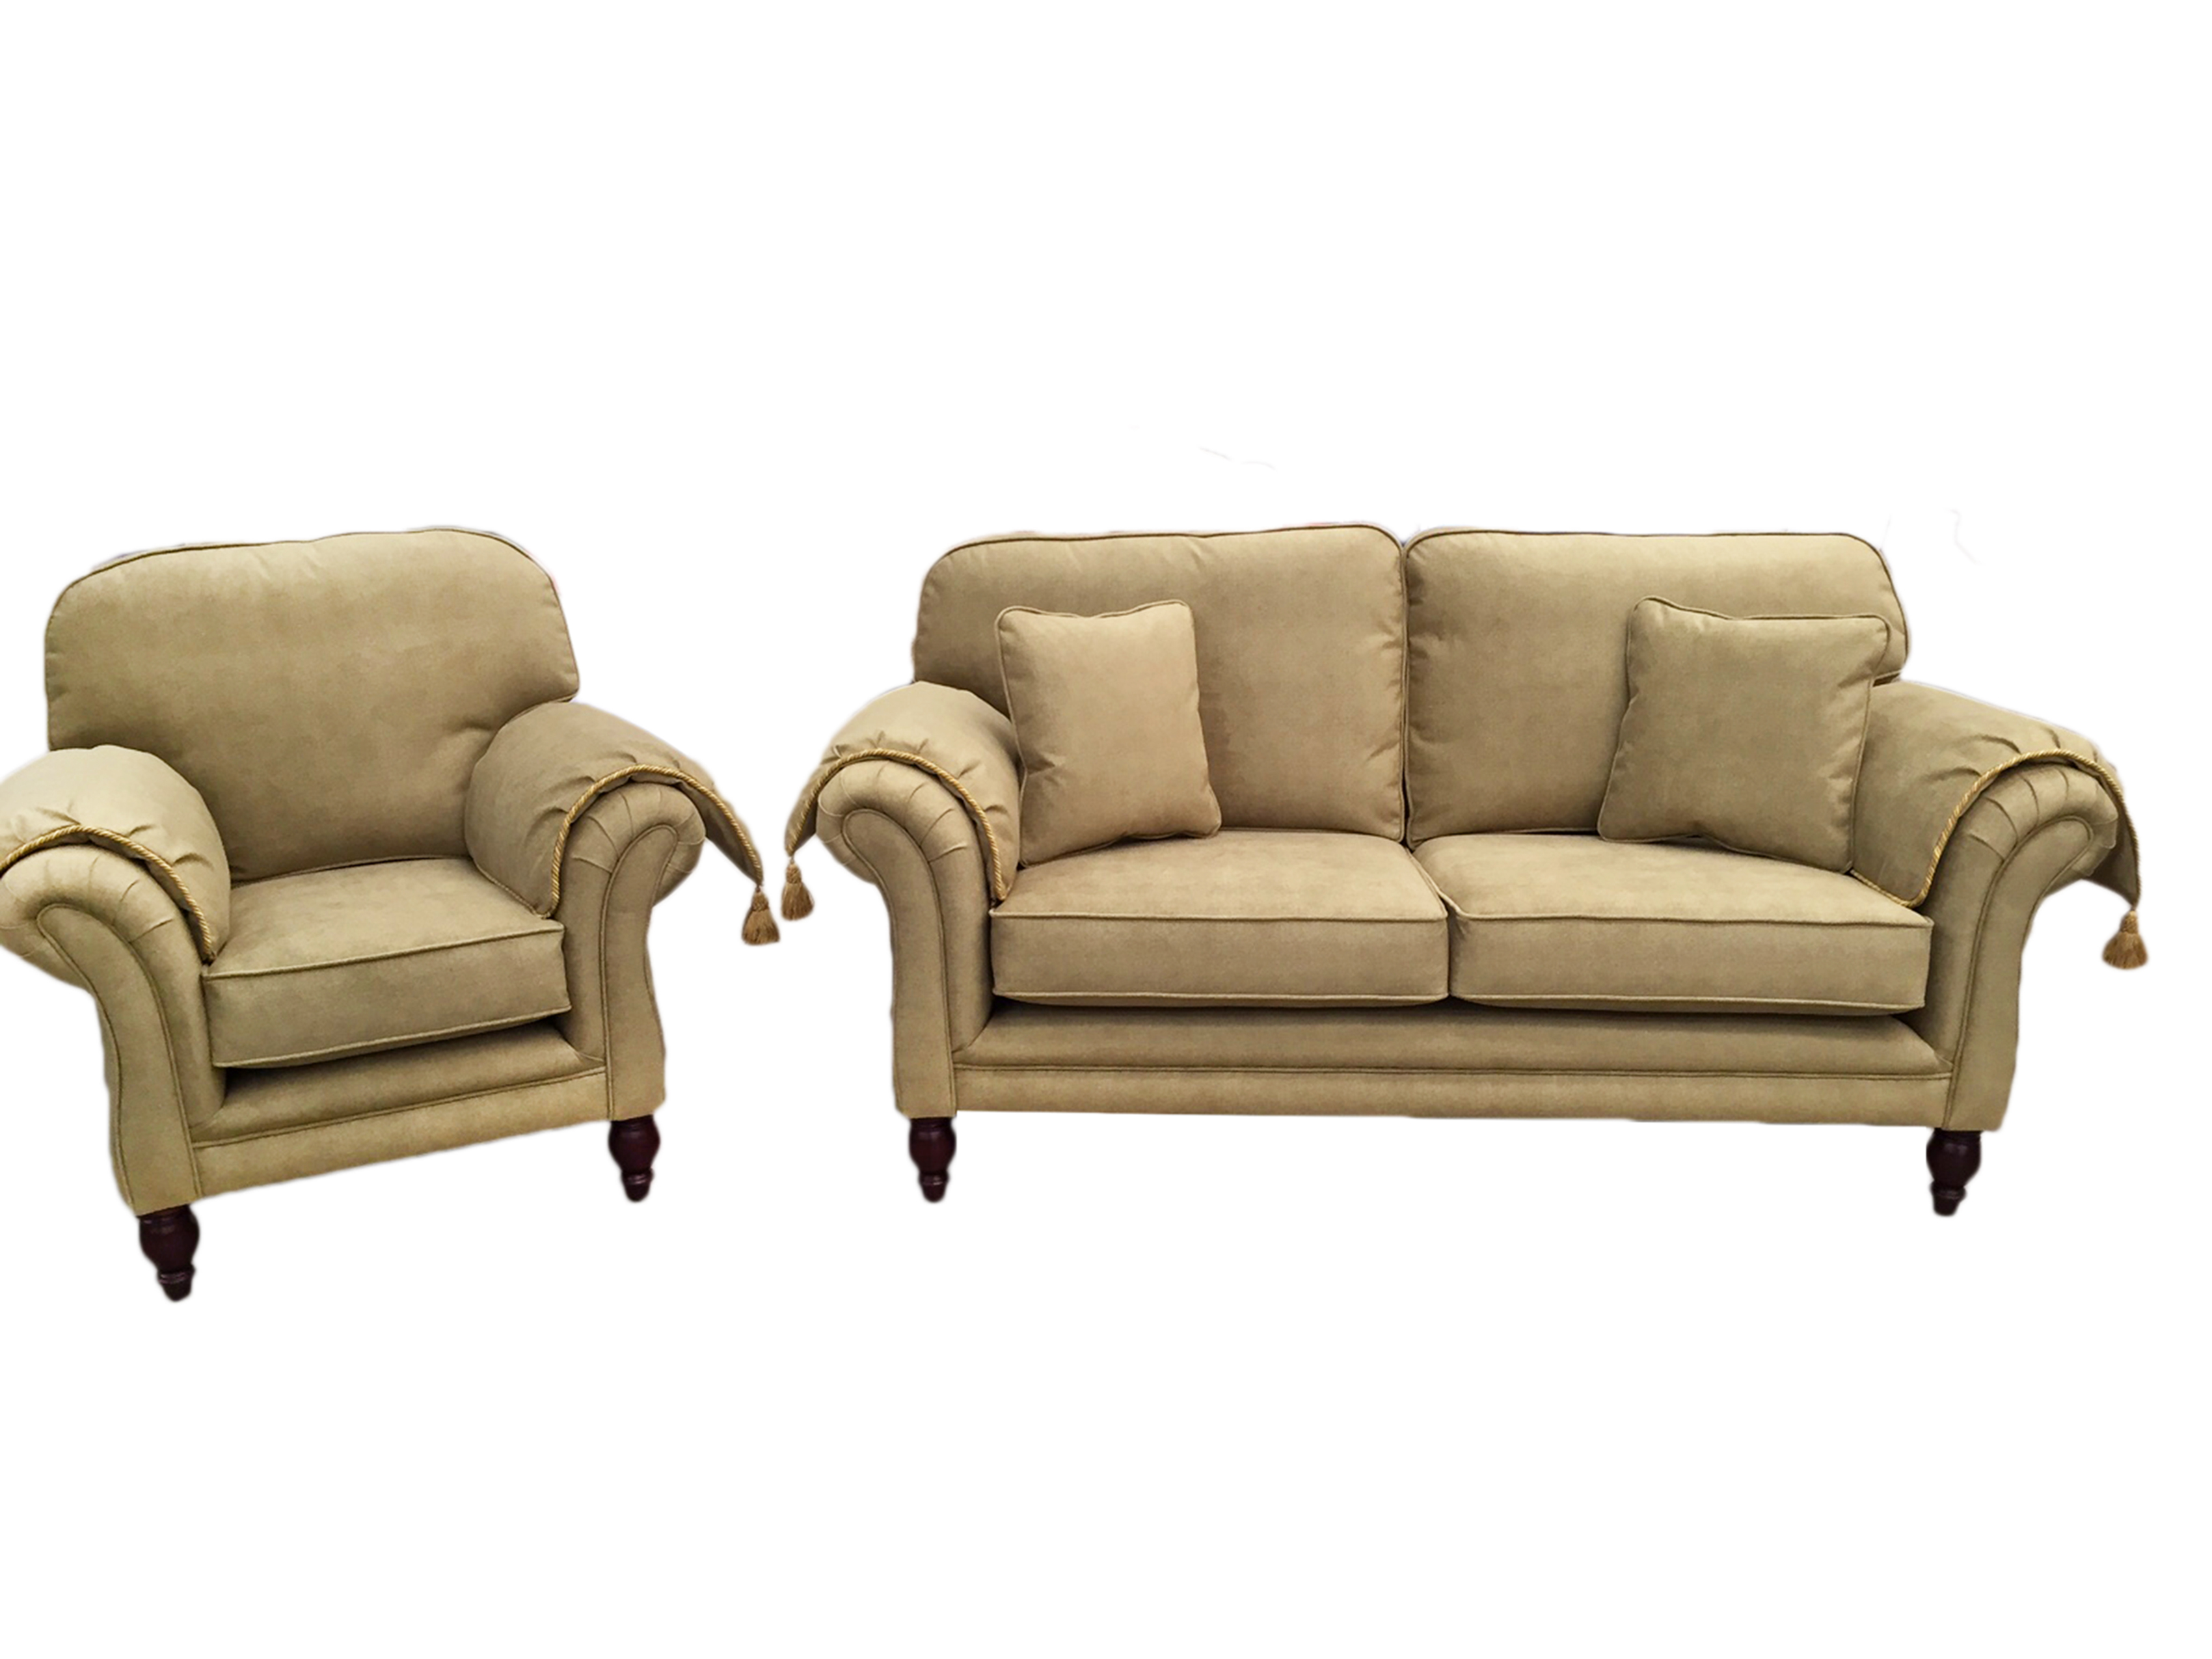 Elton Sofas And Chairs Range Finline Furniture